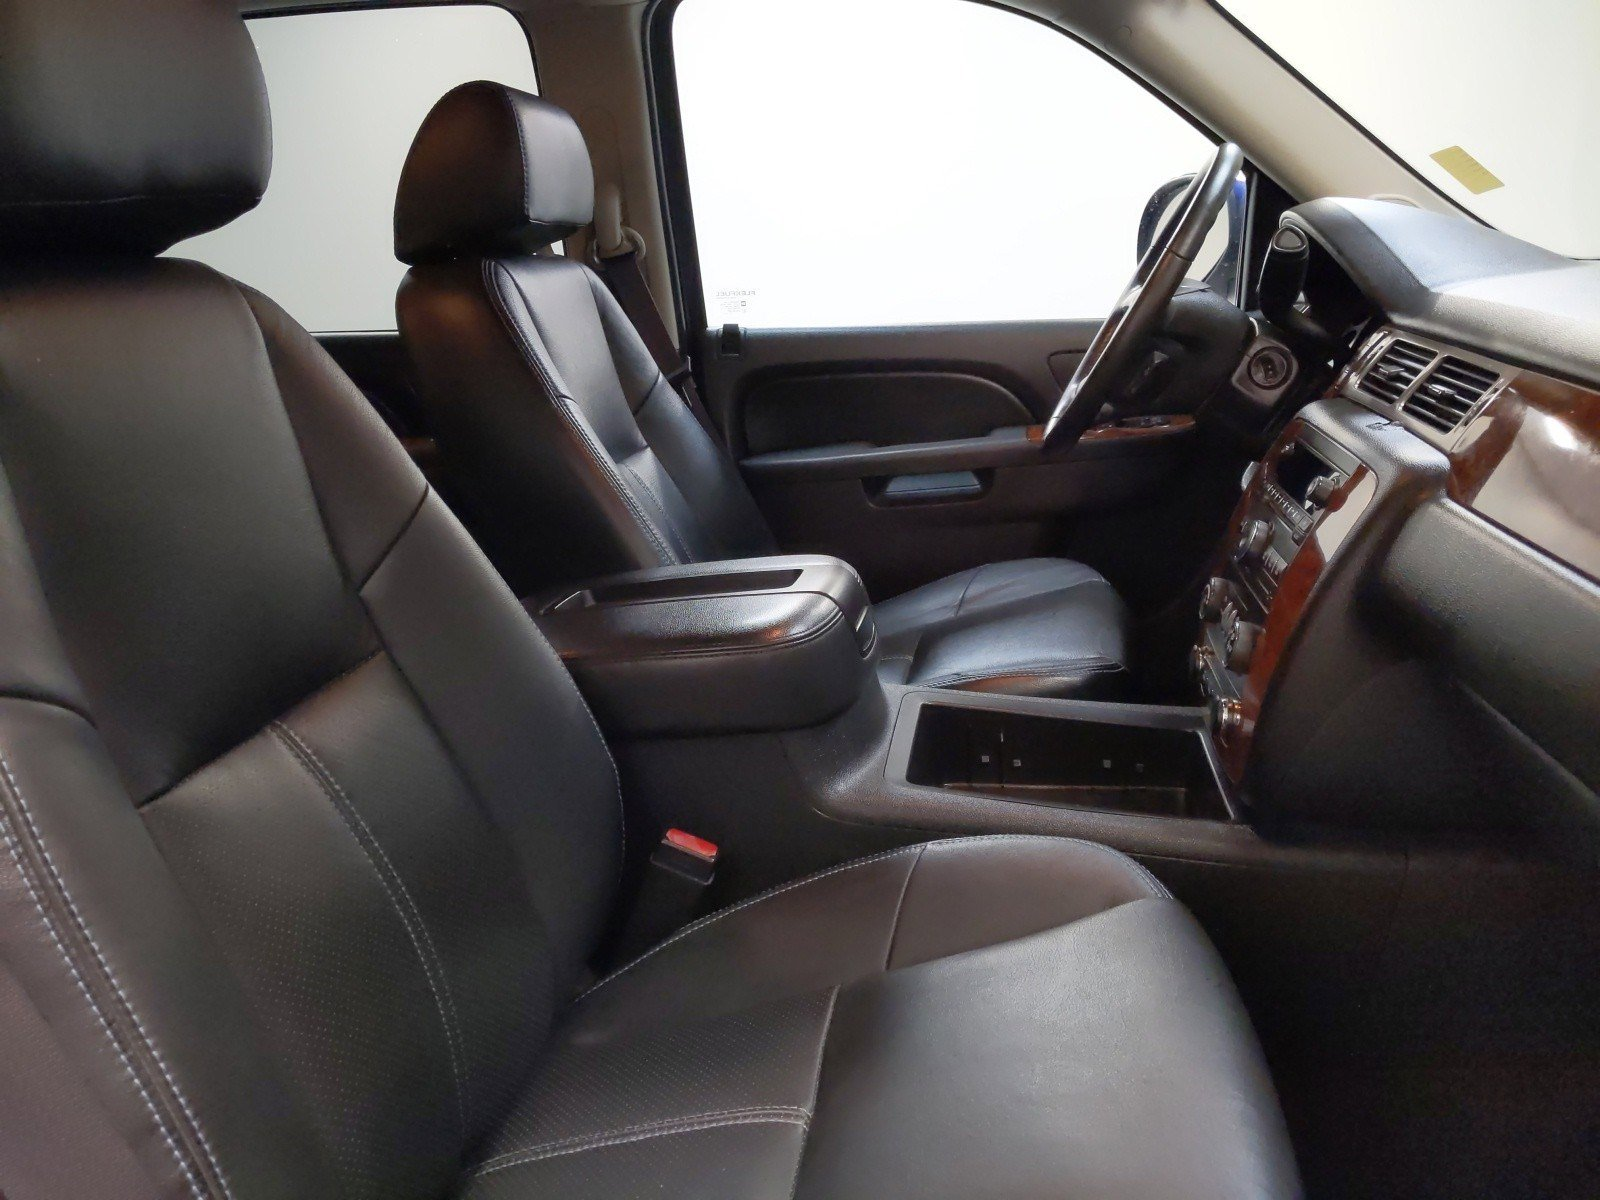 Used 2013 Chevrolet Avalanche LS 4D Crew Cab for sale in Grand Island NE